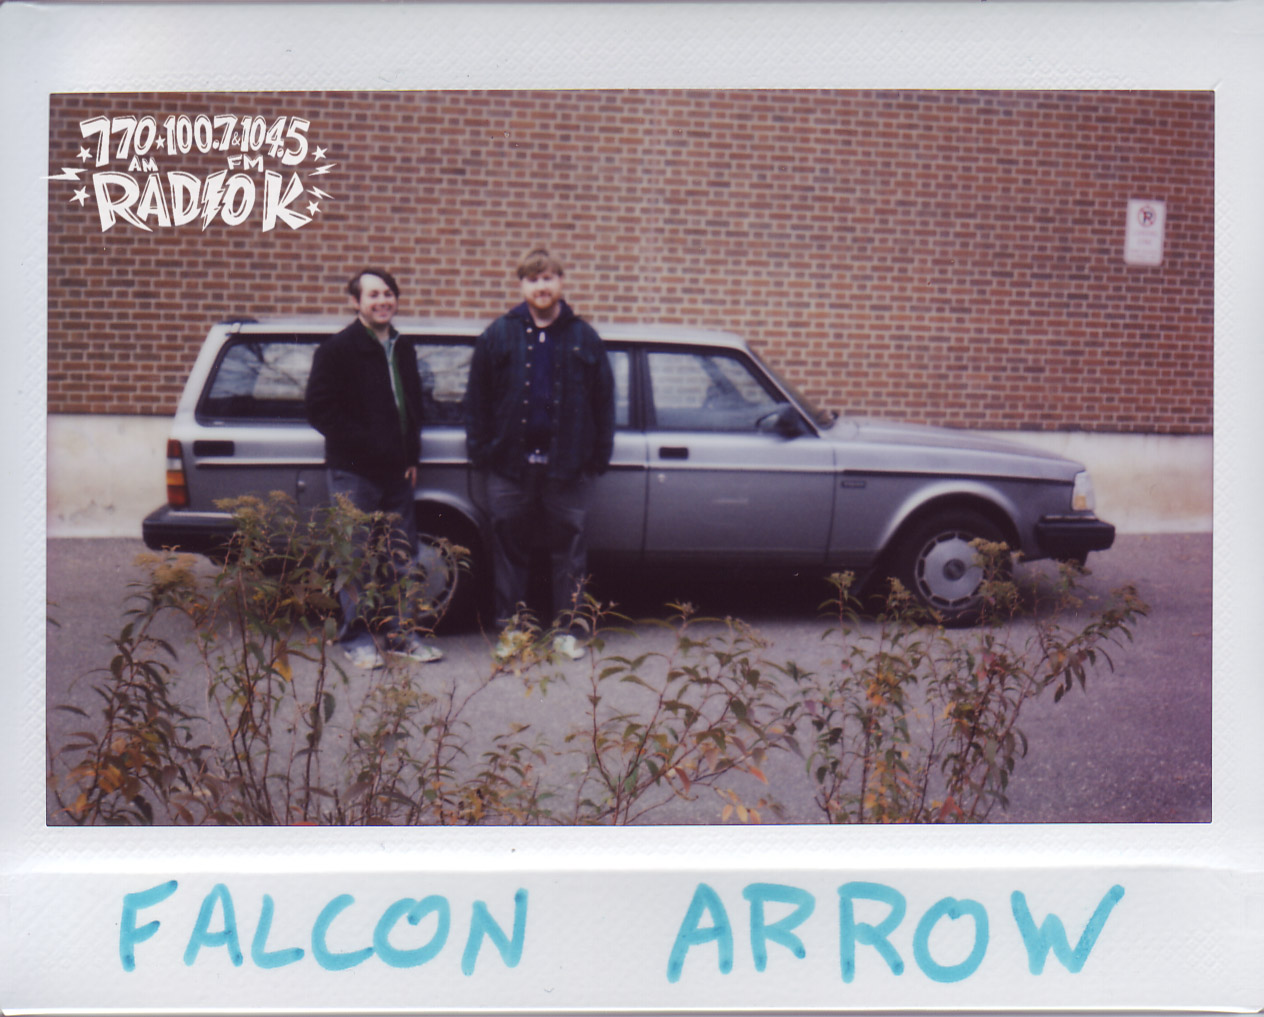 Falcon Arrow